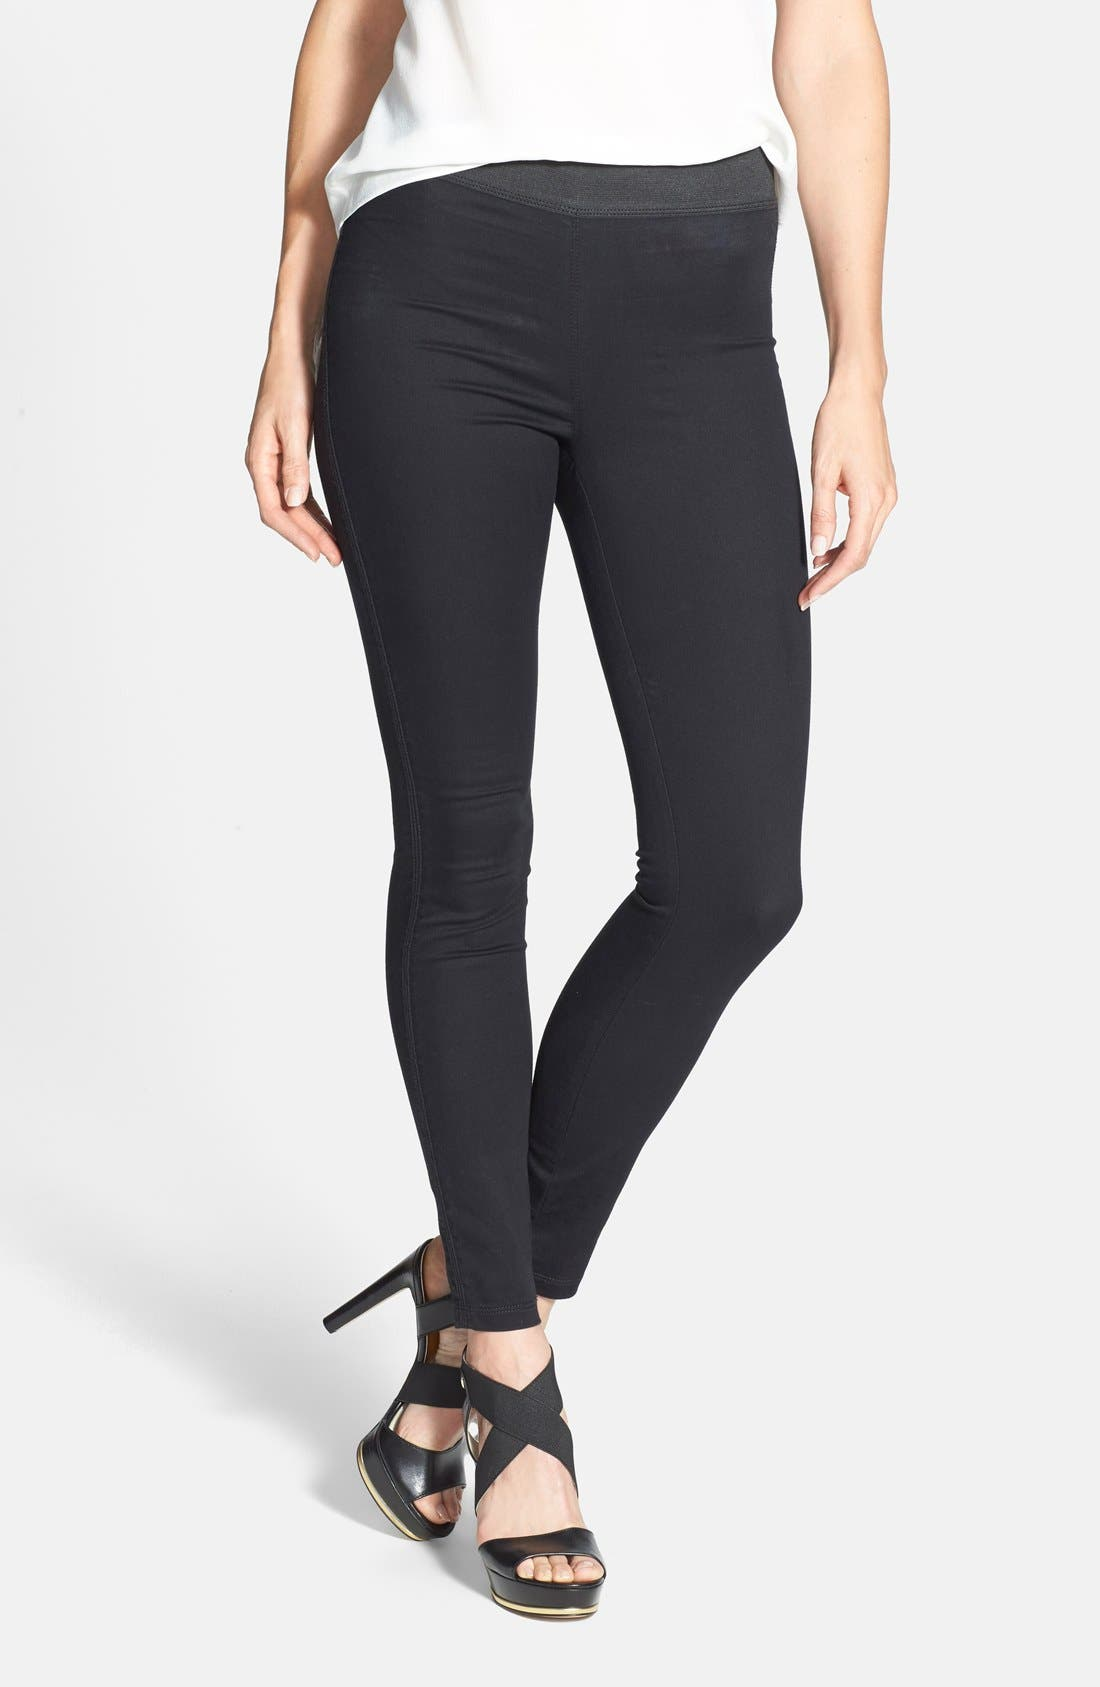 Alternate Image 1 Selected - Two by Vince Camuto Back Seam Denim Leggings